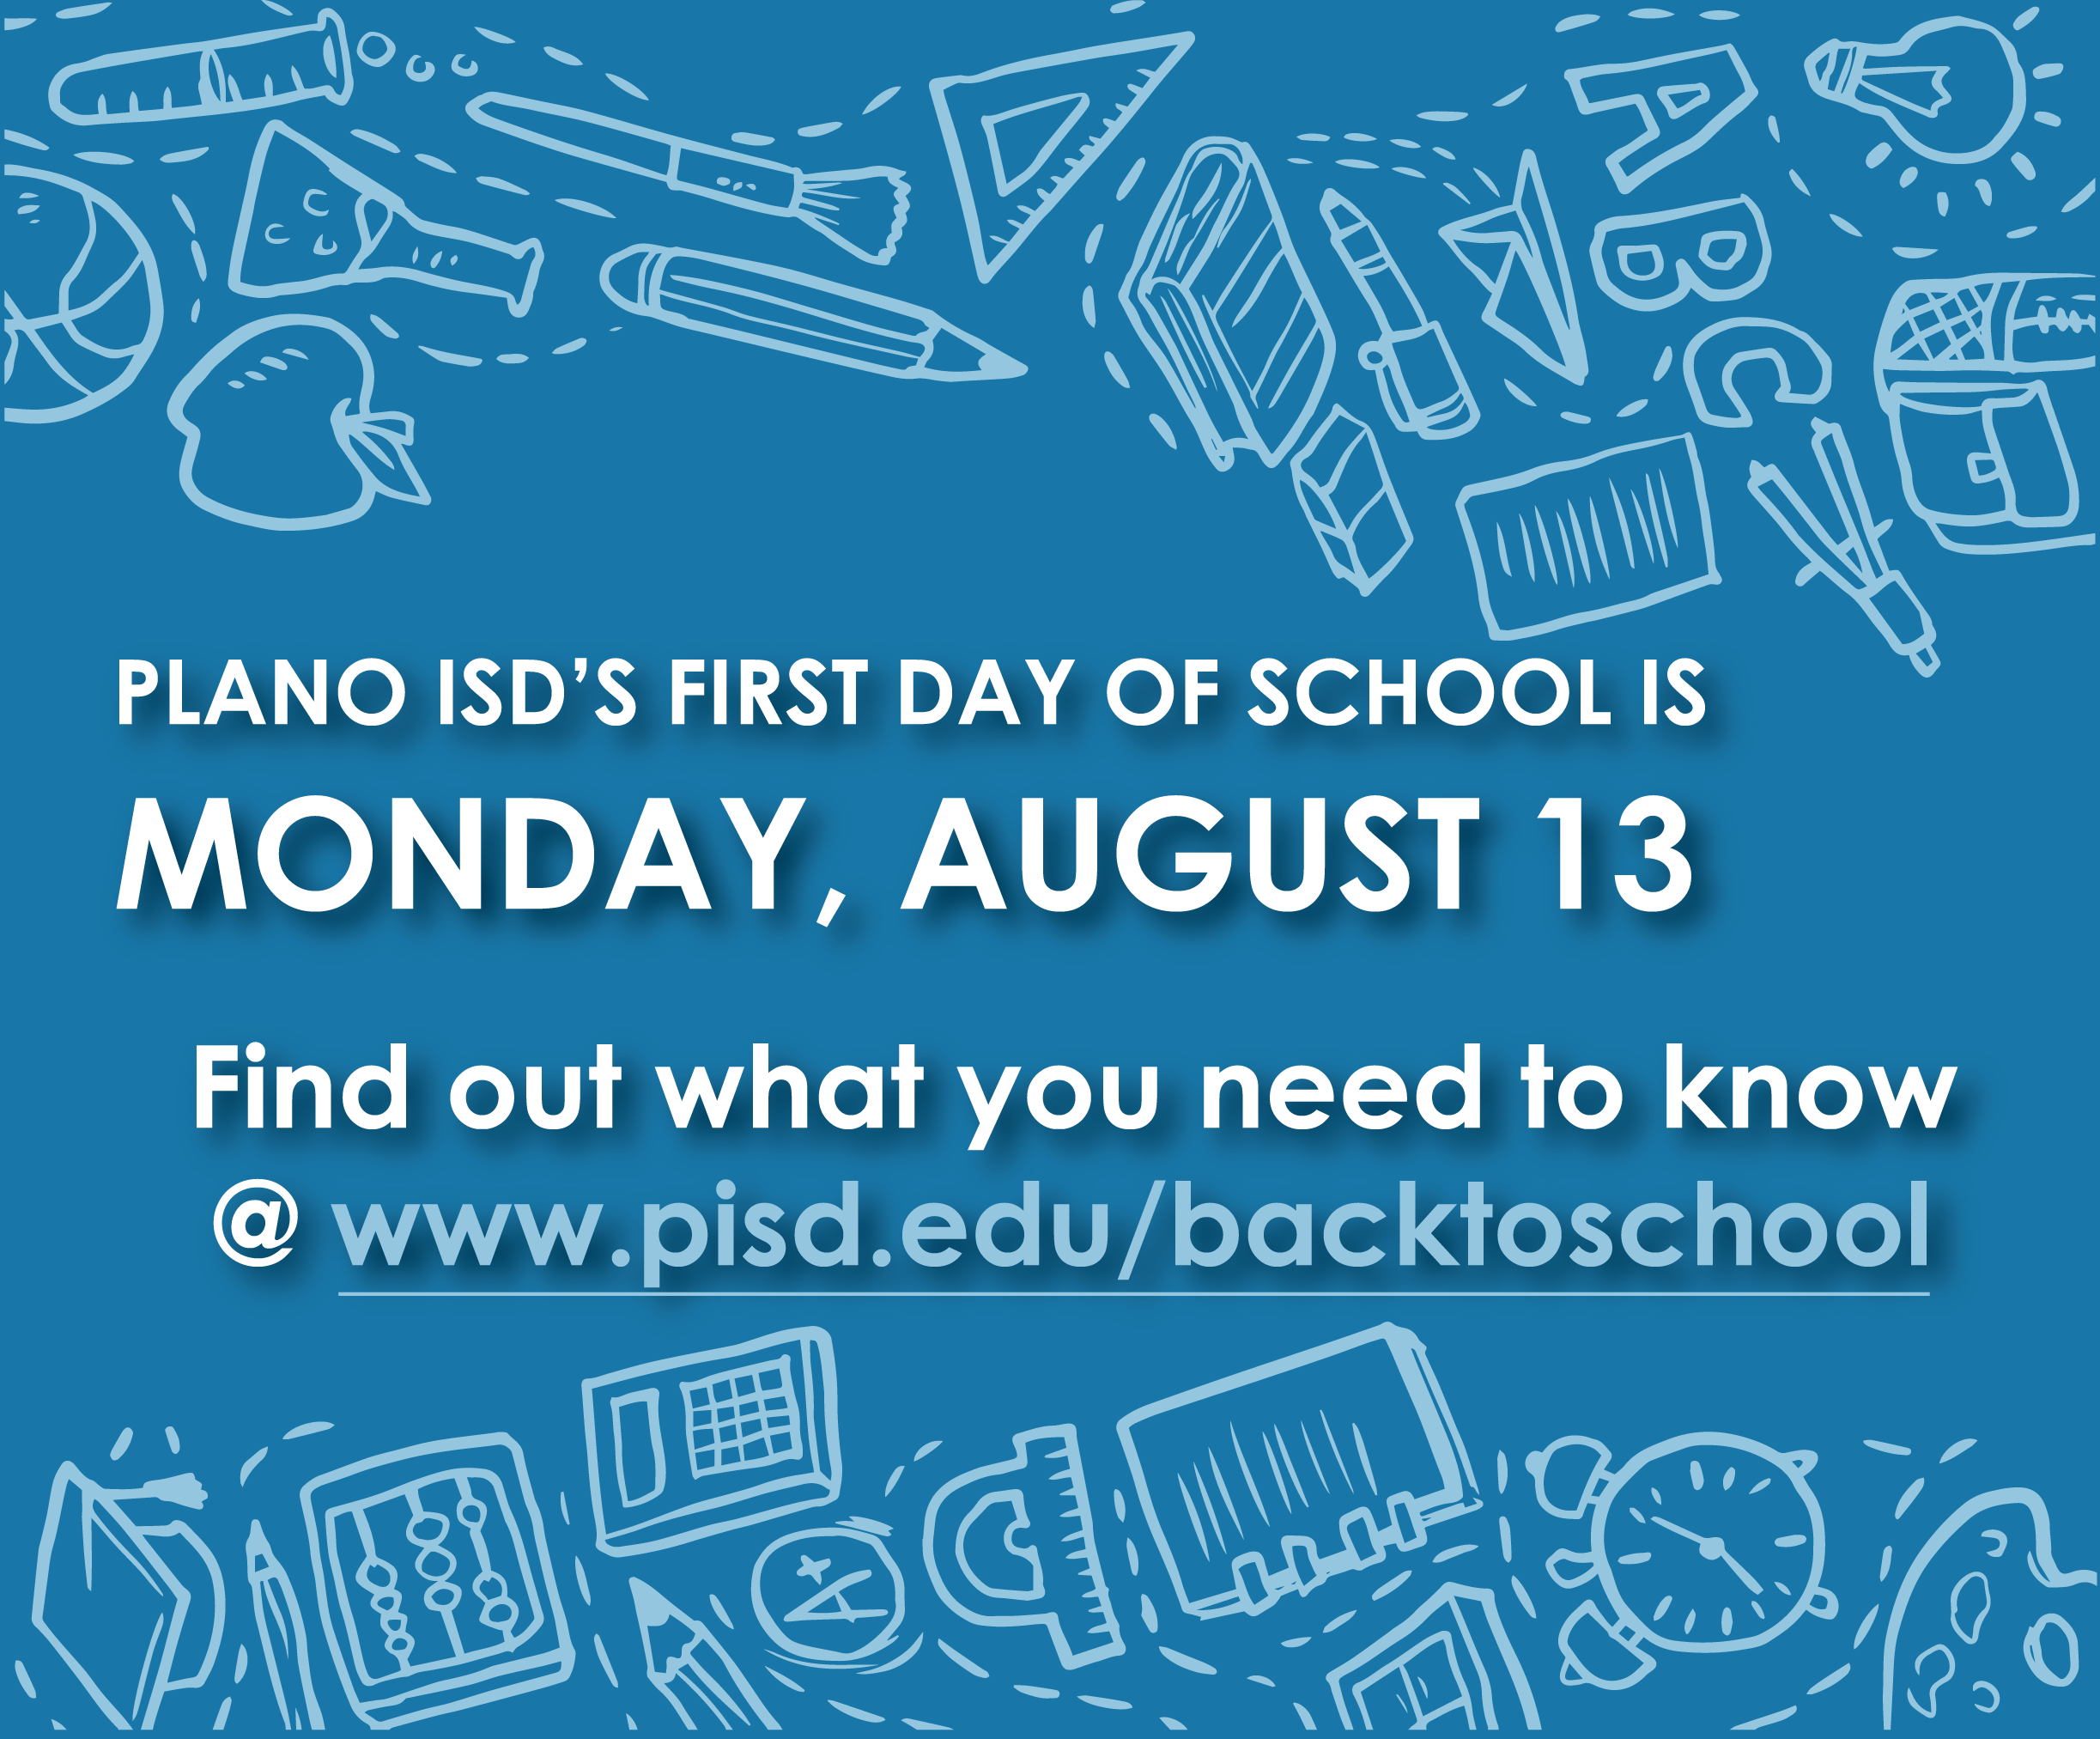 Find out what you need to know at www.pisd.edu/backtoschool